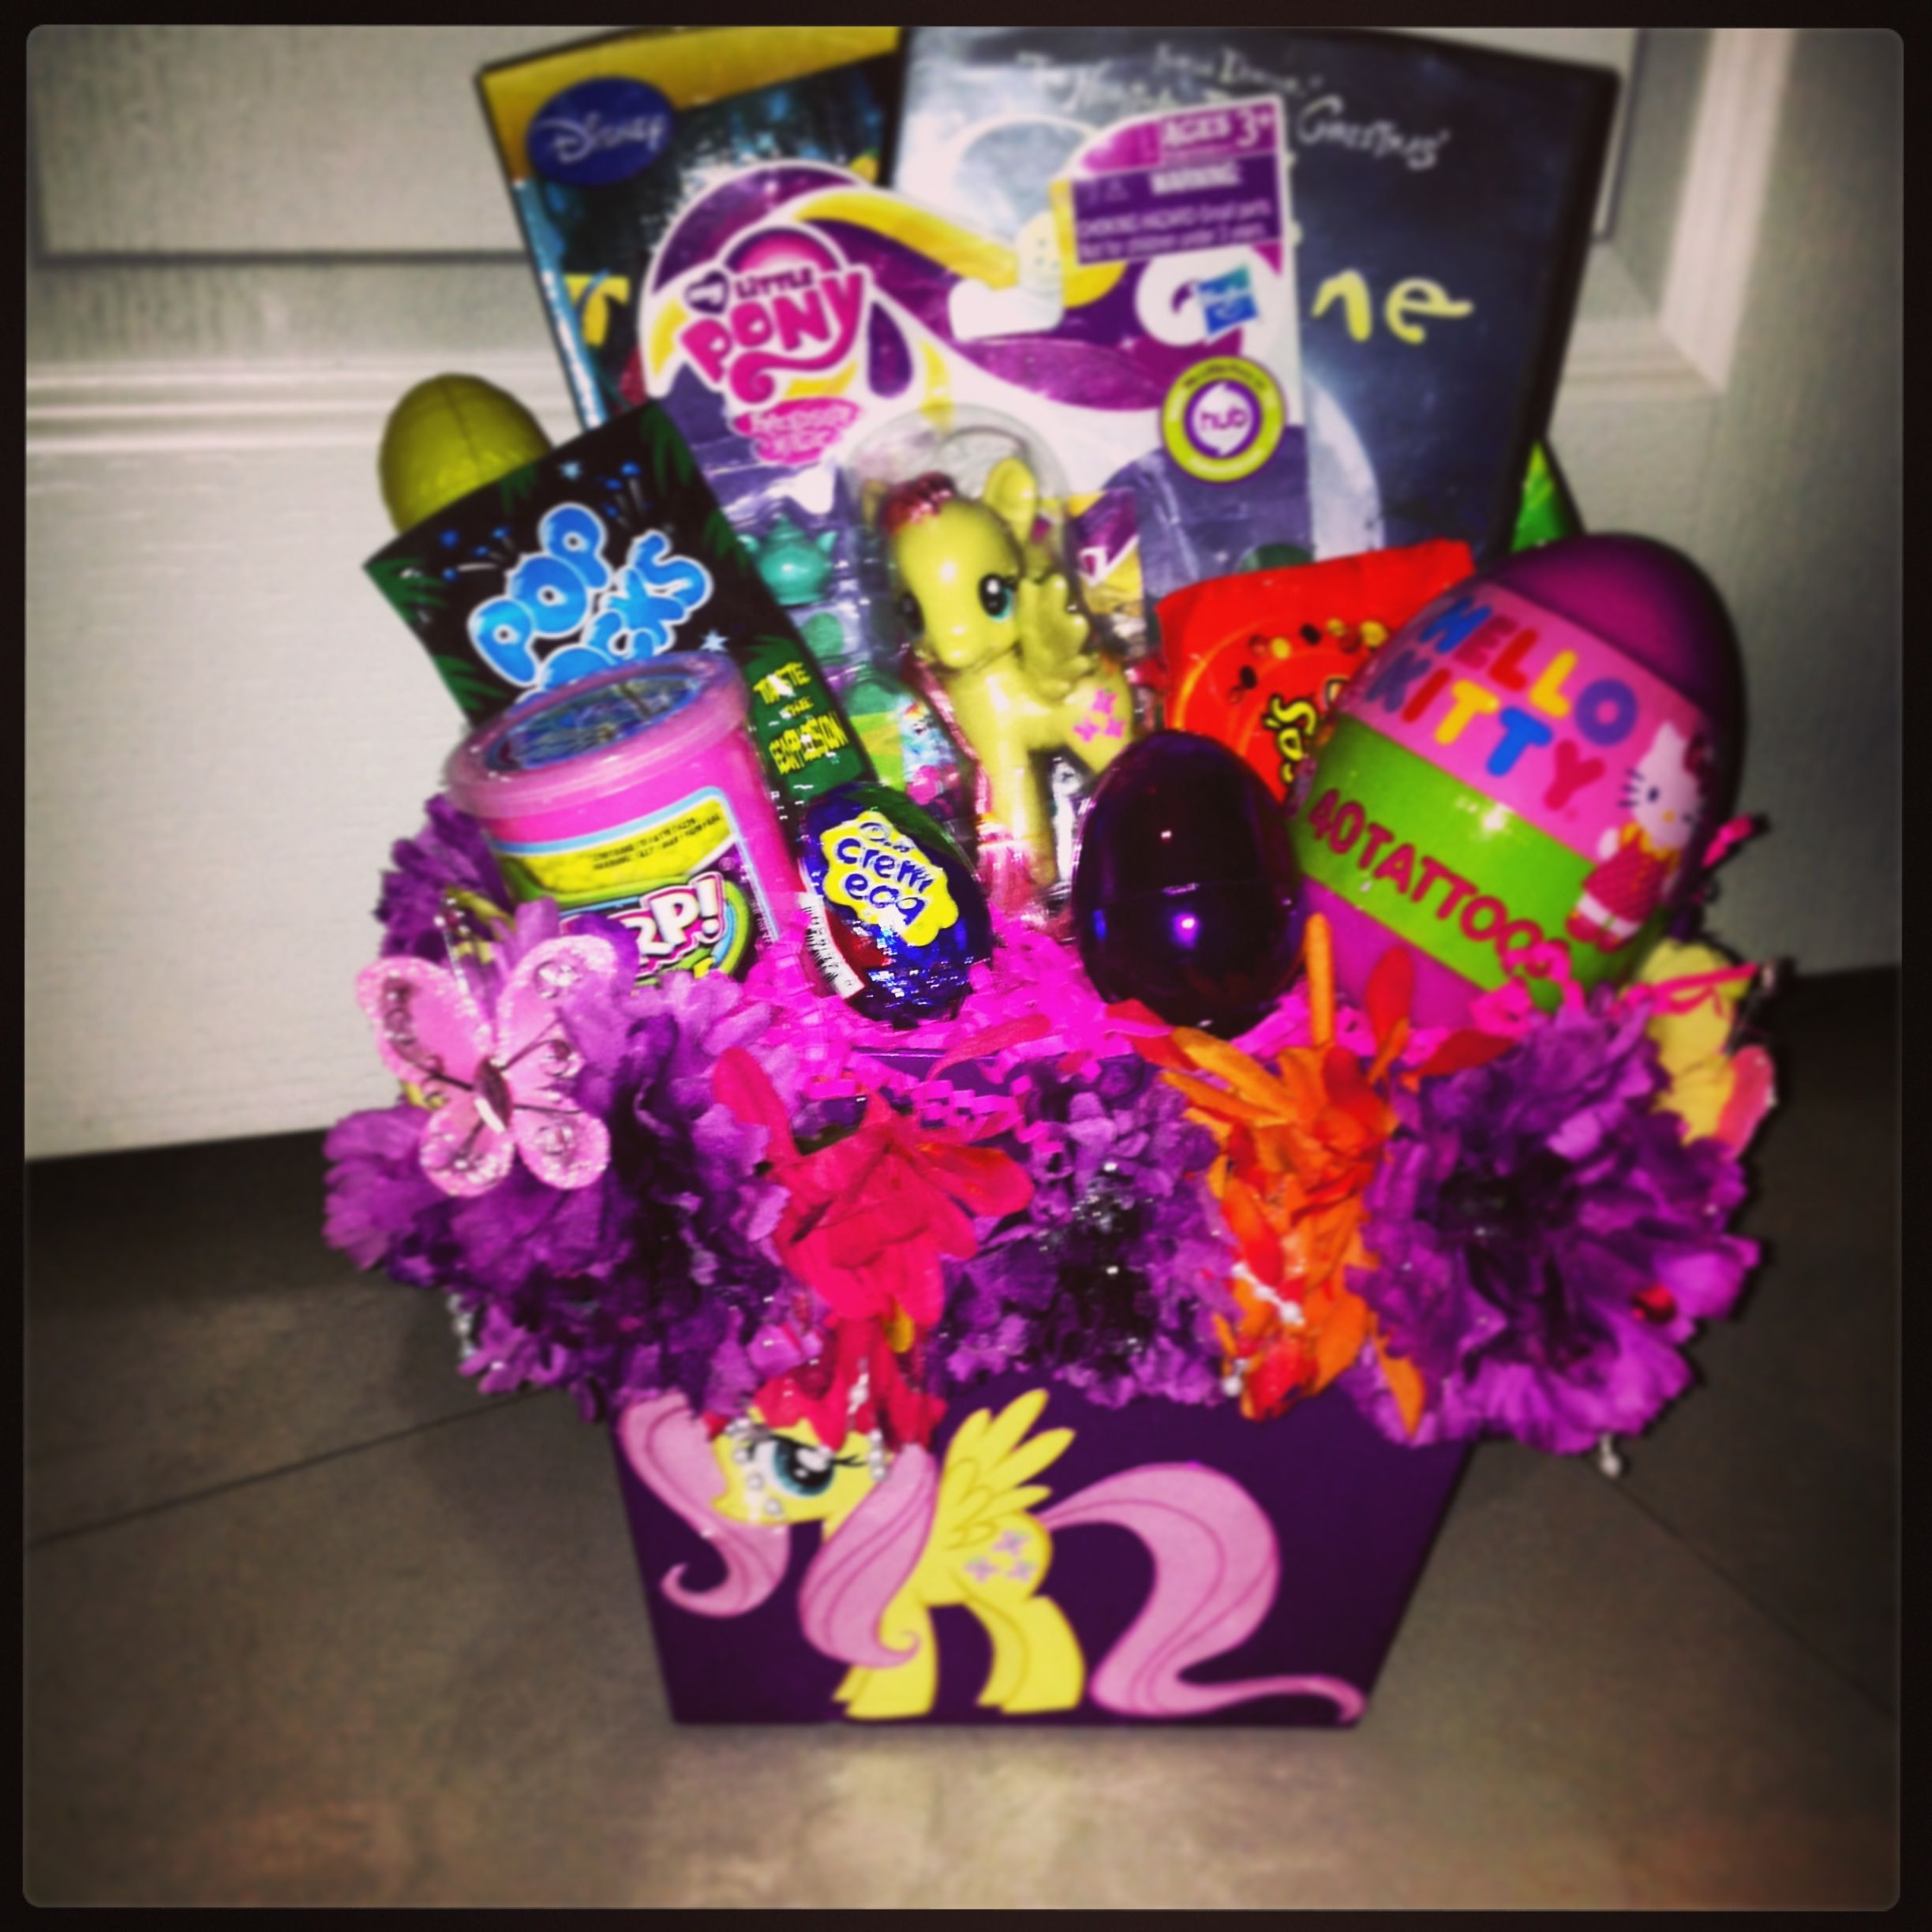 Diy My Little Pony Easter Basket Can Get Mlp Stickers To Decorate Basket And Fill With Mlp Goo S